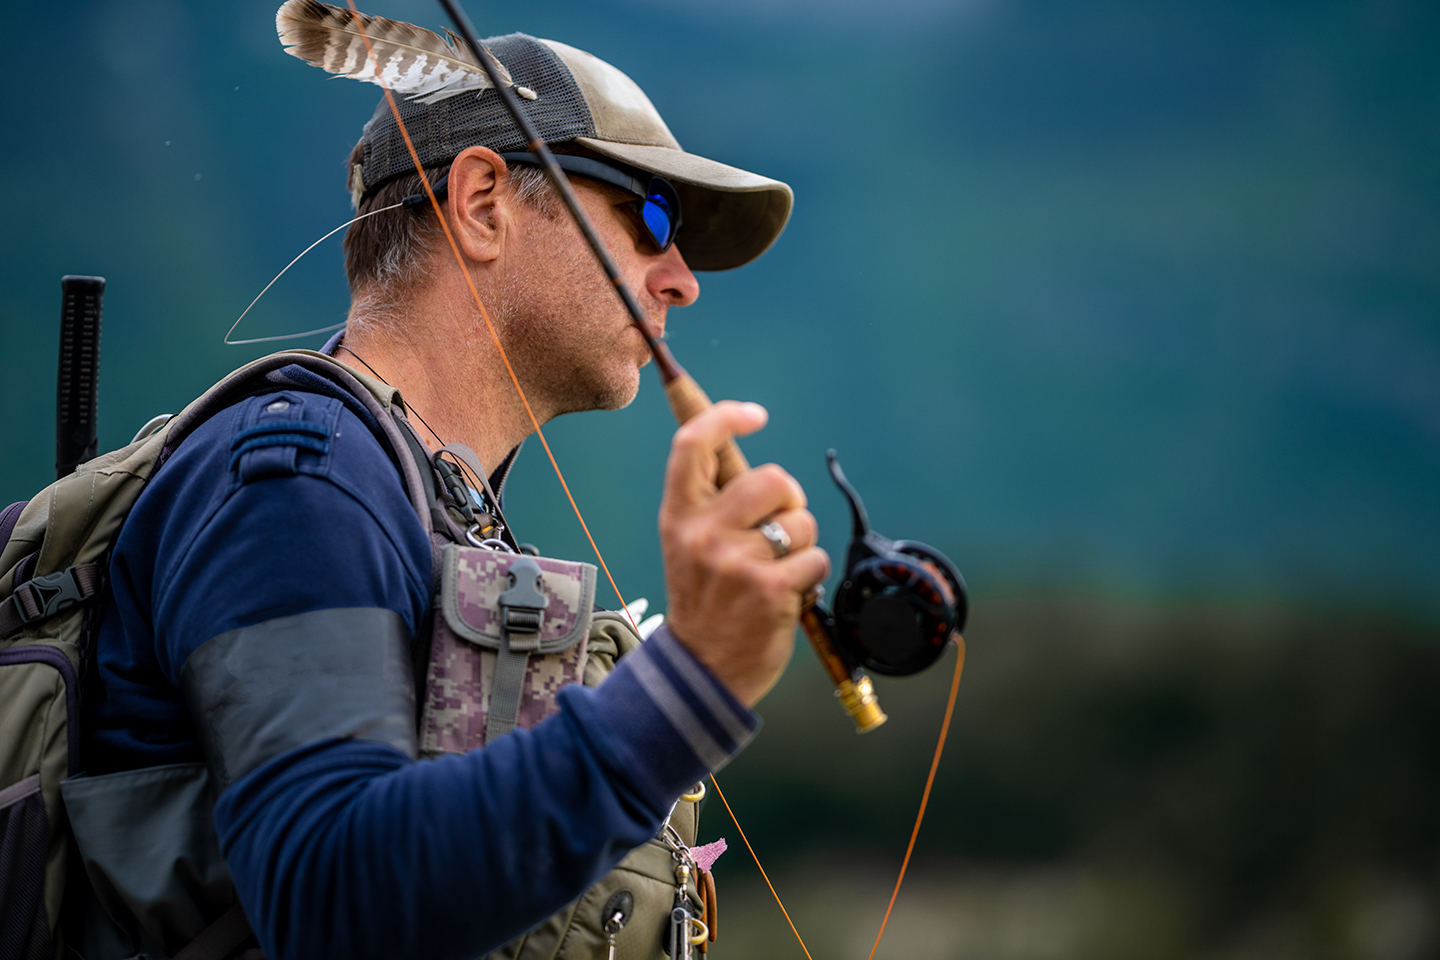 A man in a hat and sunglasses casting a fly rod